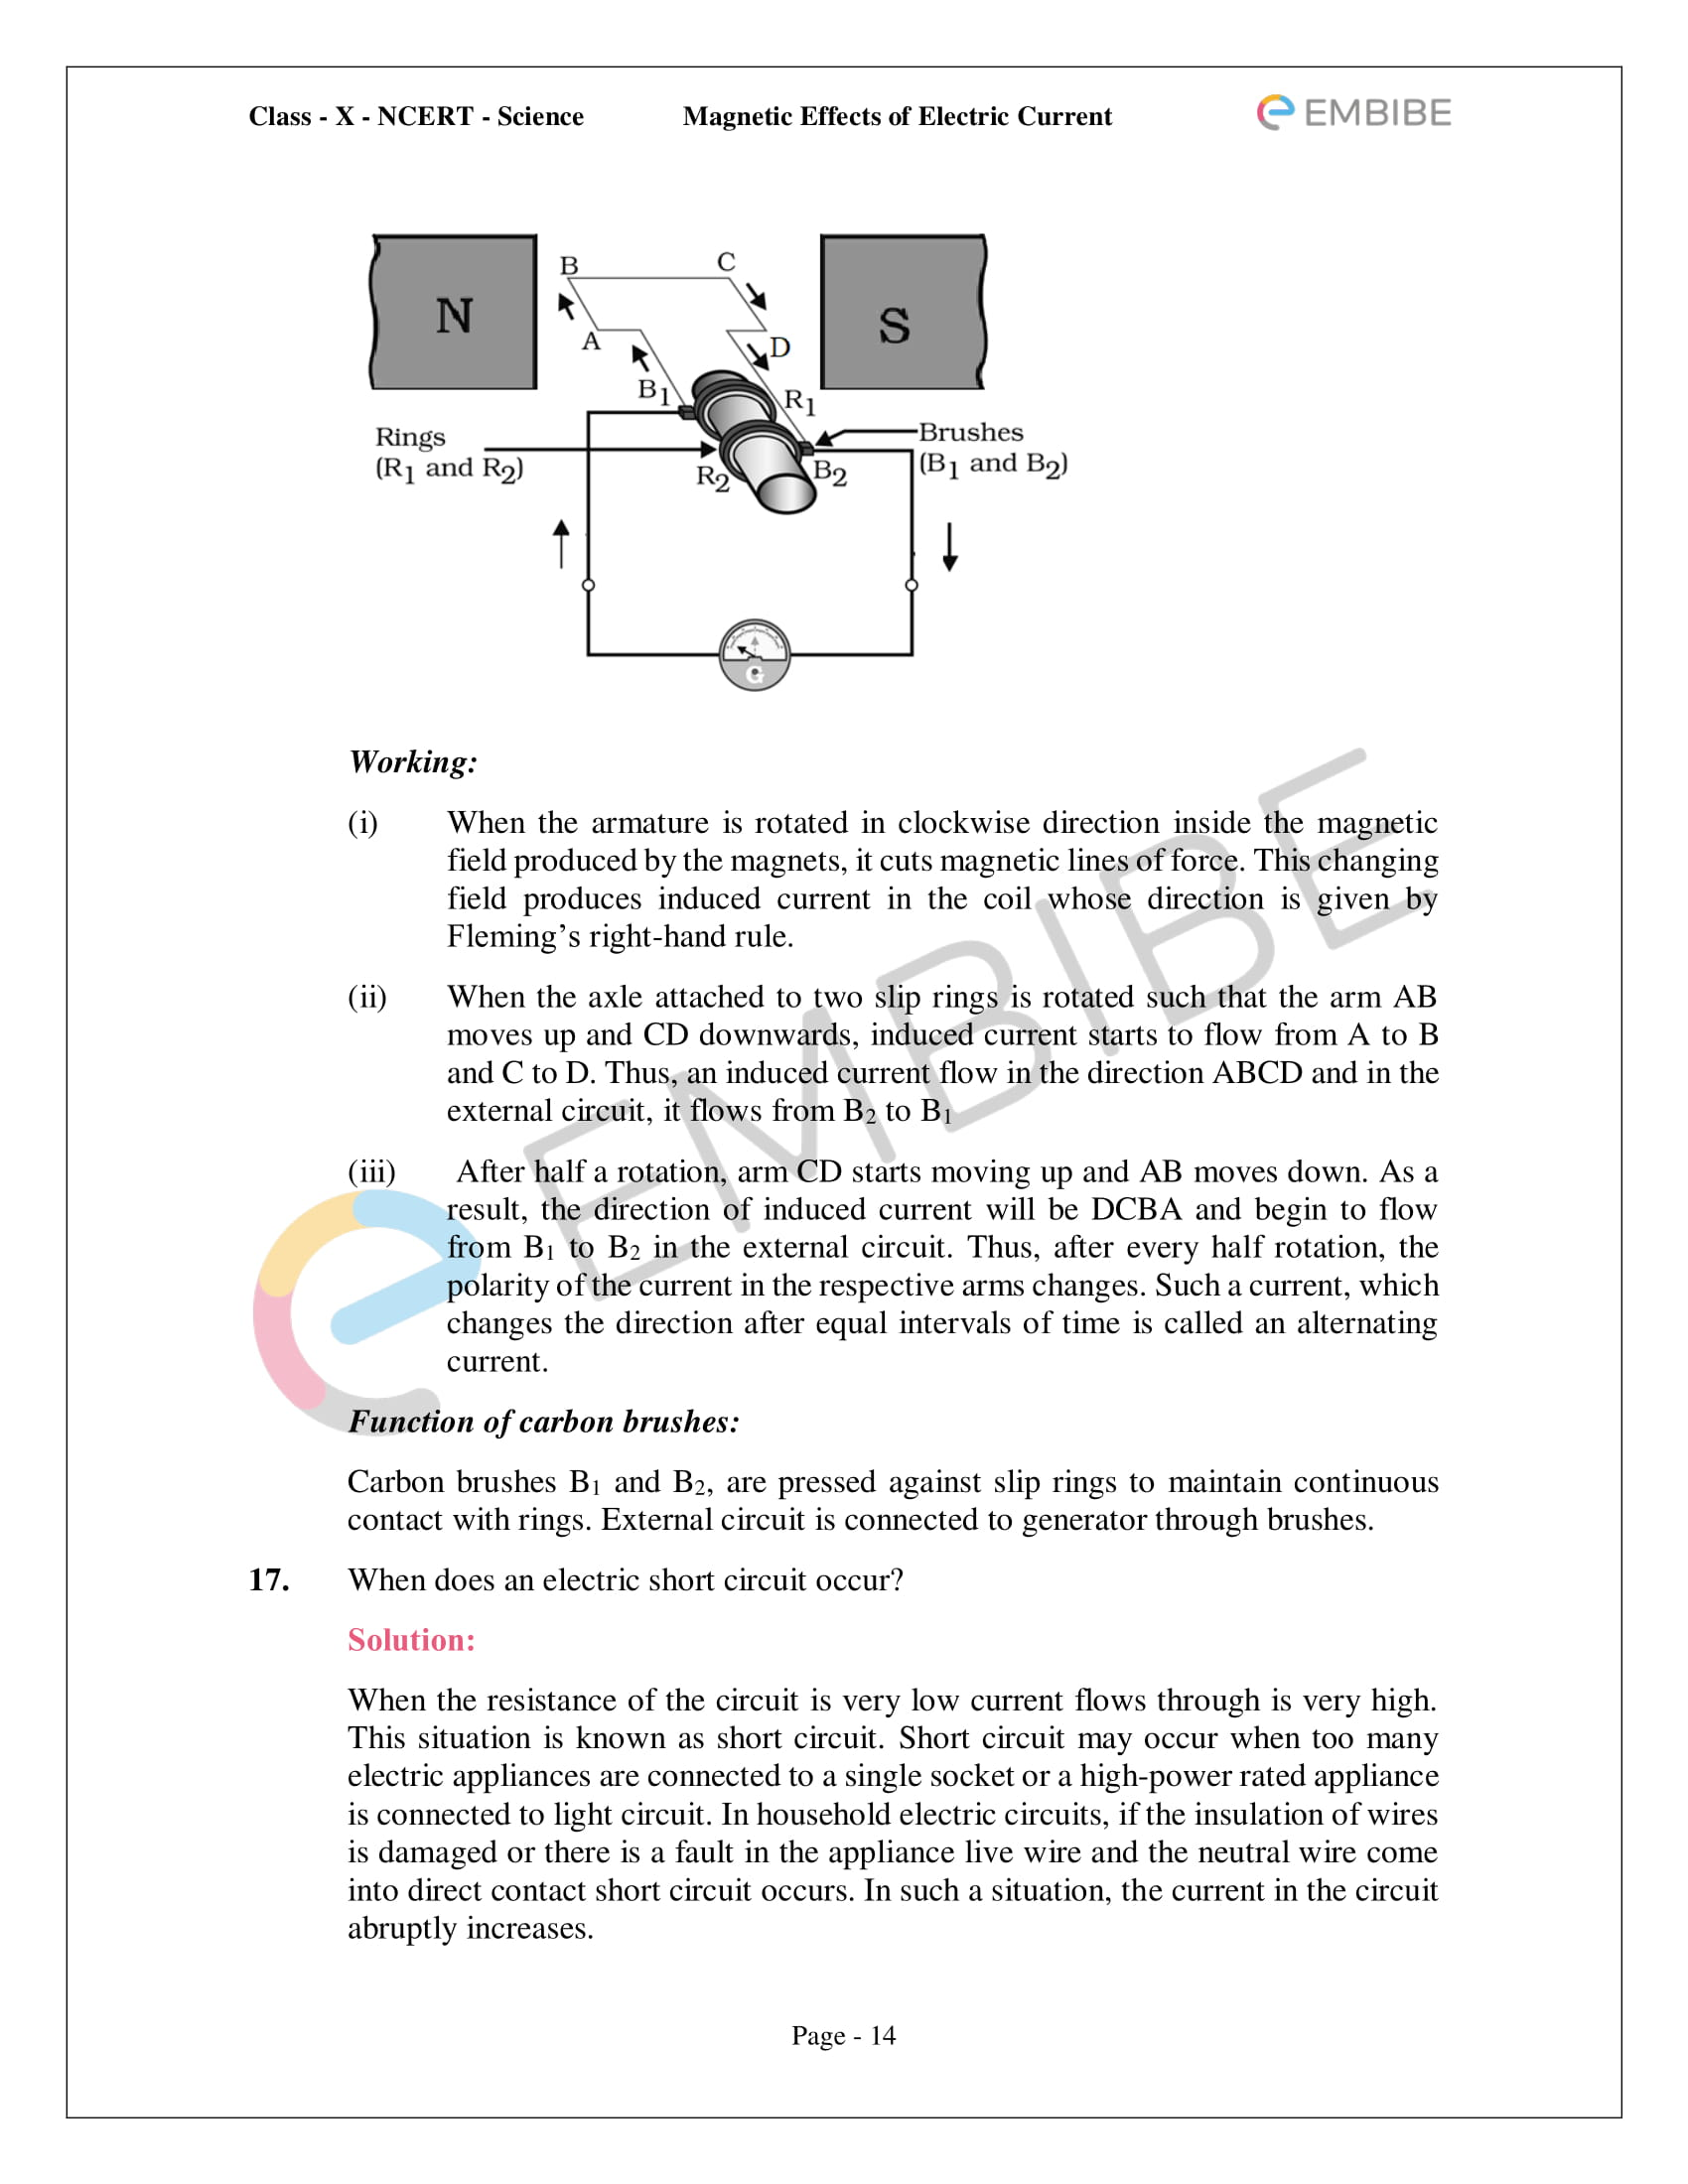 CBSE NCERT Solutions For Class 10 Science Chapter 13 - Magnetic Effects of Electric Current - 14